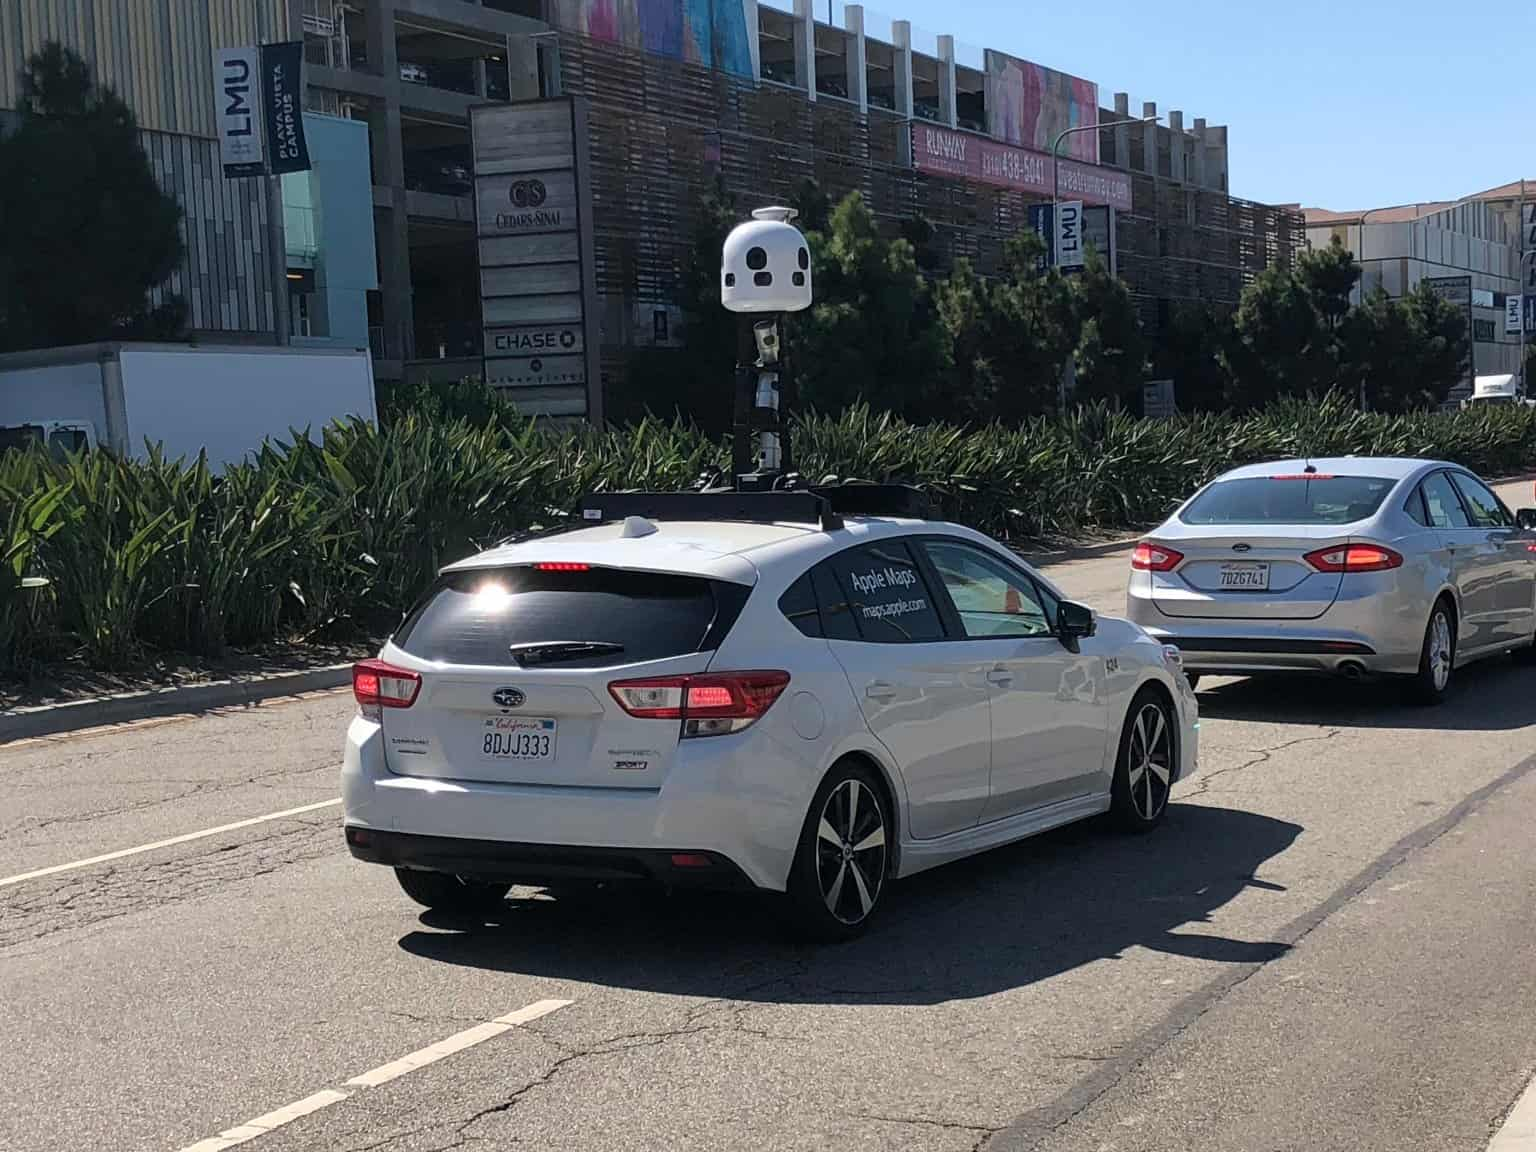 Apple's Second-generation Mapping Vehicles Spotted in the Wild